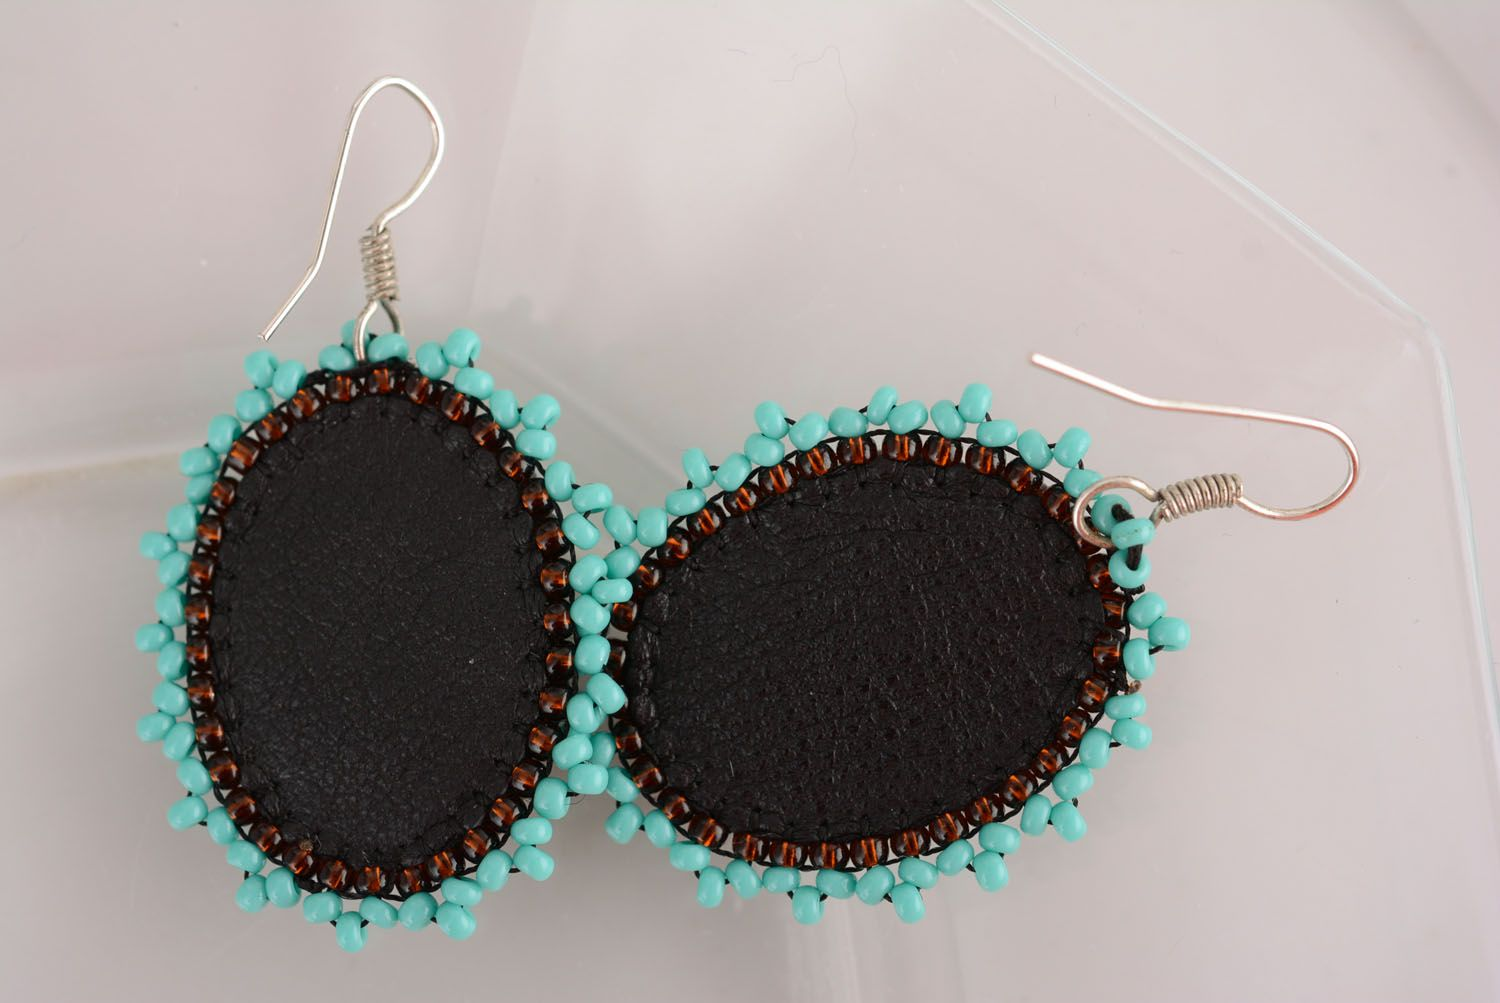 Earrings with charms Chocolate and Turquoise photo 3